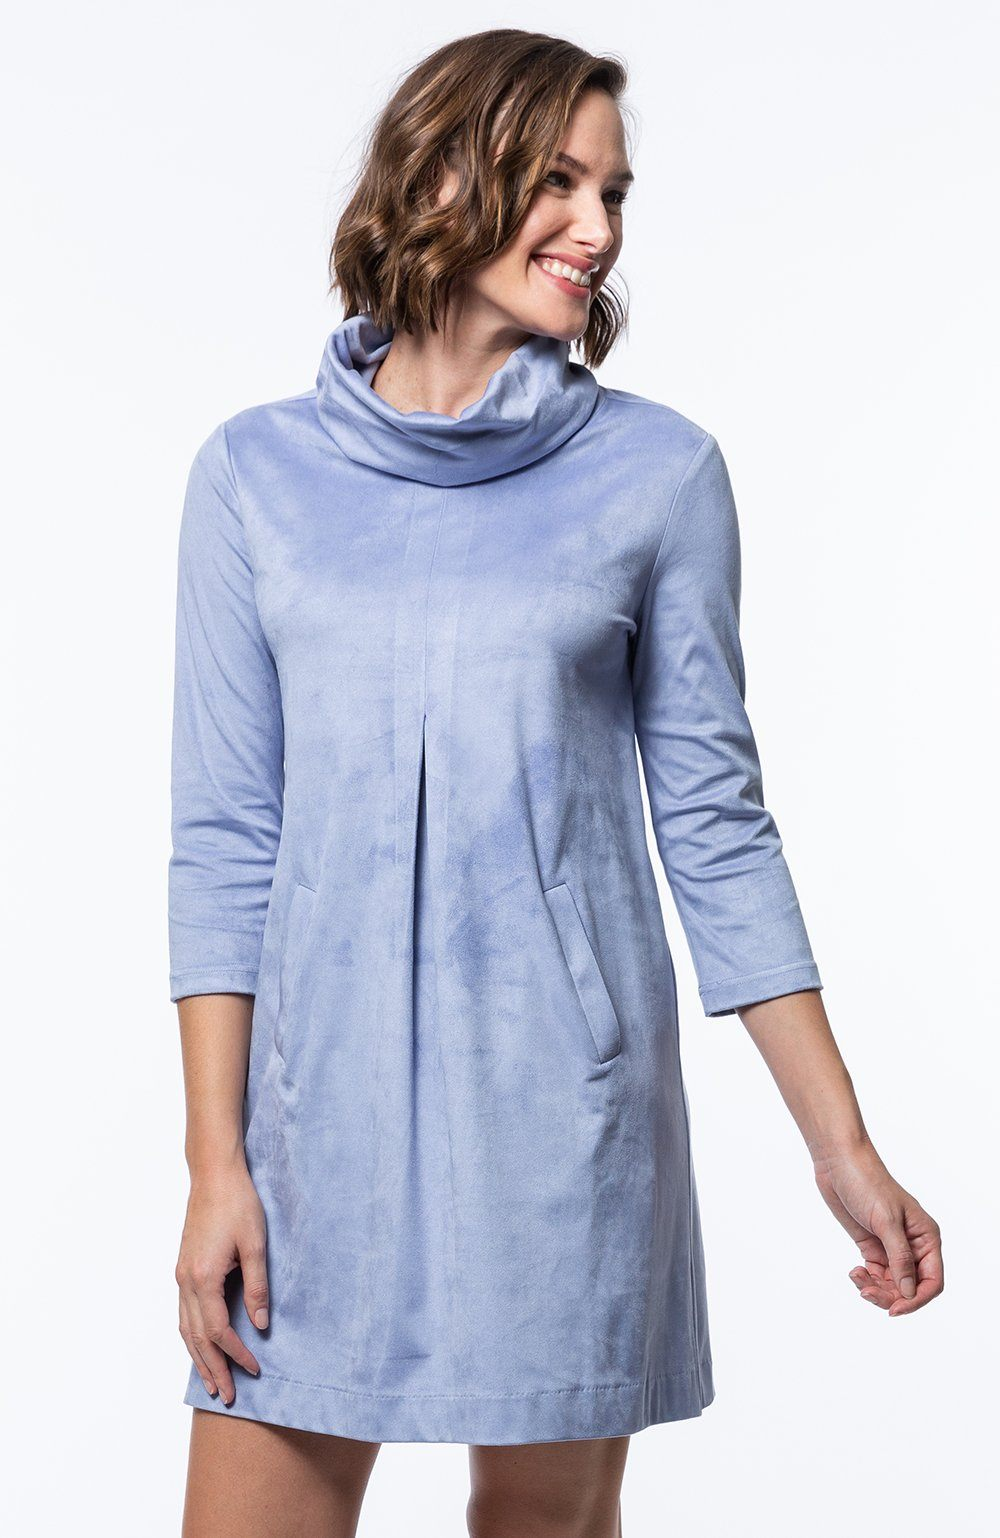 Tyler Böe Kim Cowl Dress - Sky Faux Suede